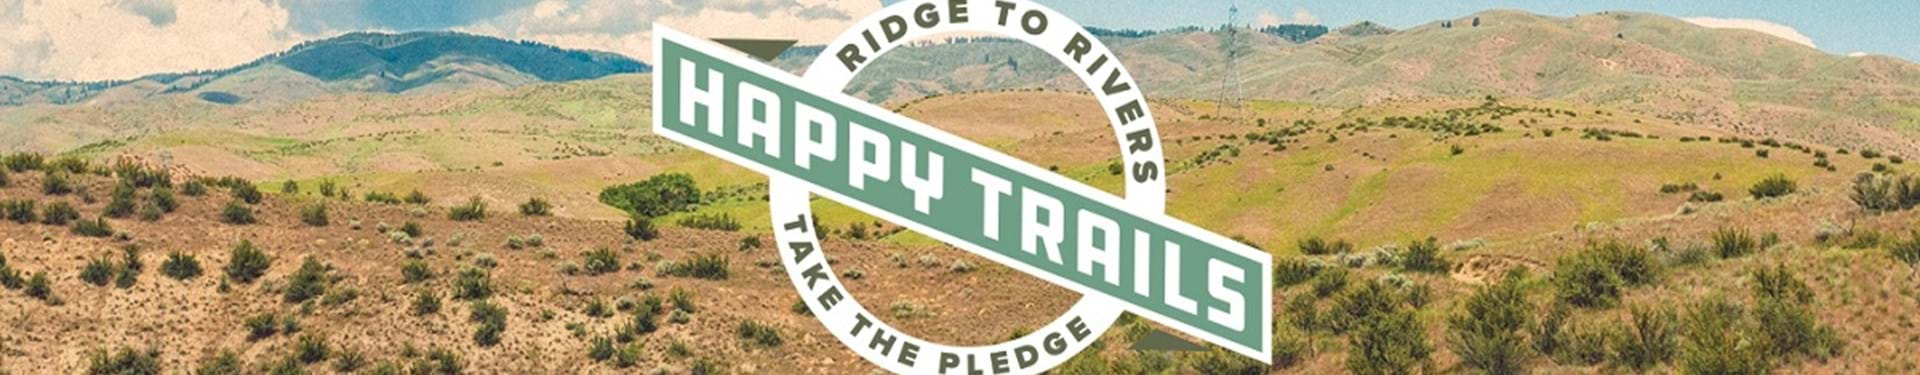 Happy_Trails_Banner_1.jpg